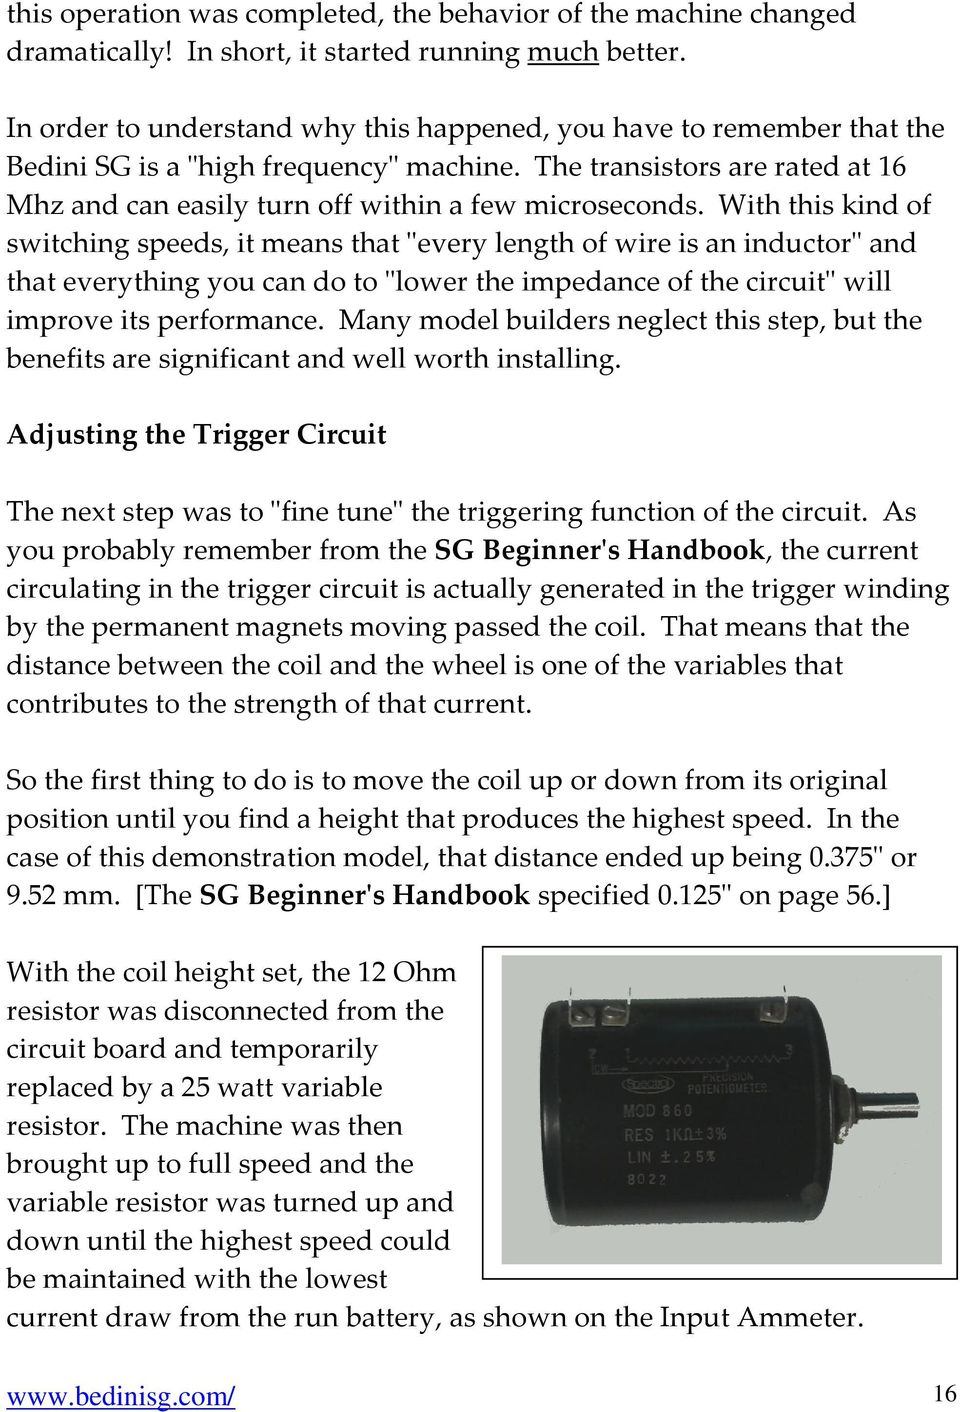 Bedini Sg The Complete Advanced Handbook Written By Peter Thisdiagram Was Used John To Test Tesla Switch With This Kind Of Switching Speeds It Means That Every Length Wire Is